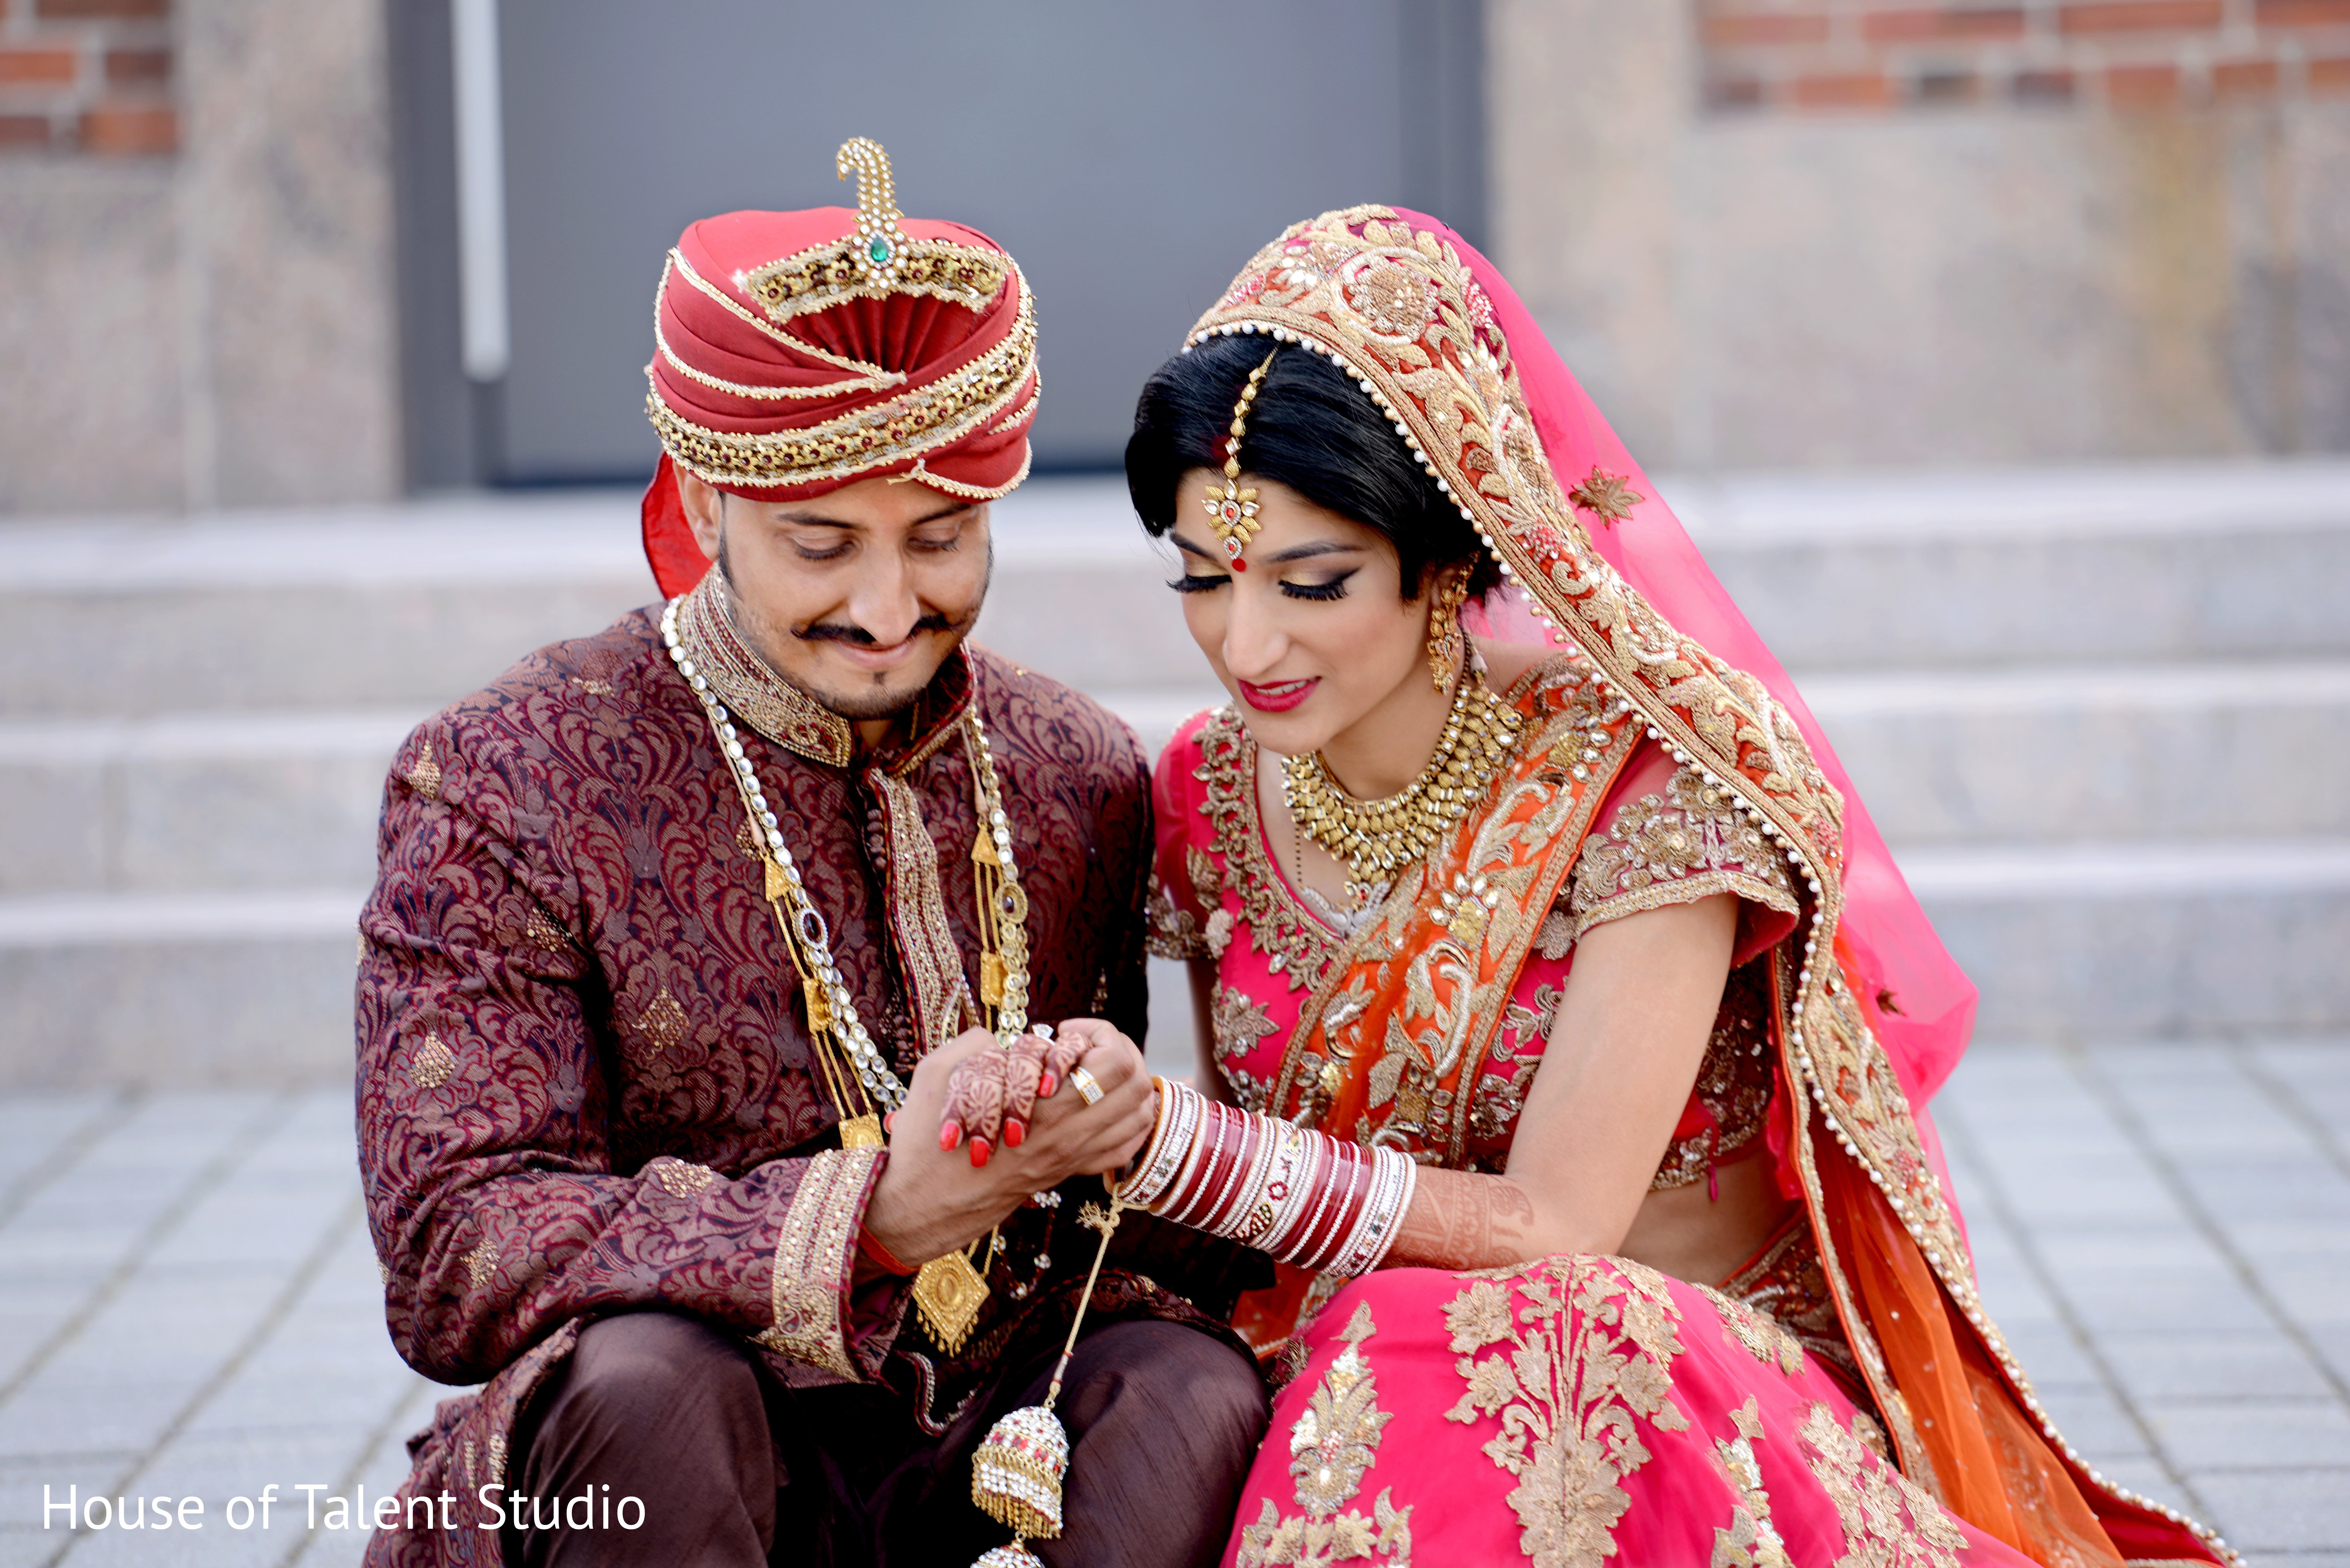 Wedding Photography Indian Wedding: Portraits In Long Island, NY Indian Wedding By House Of